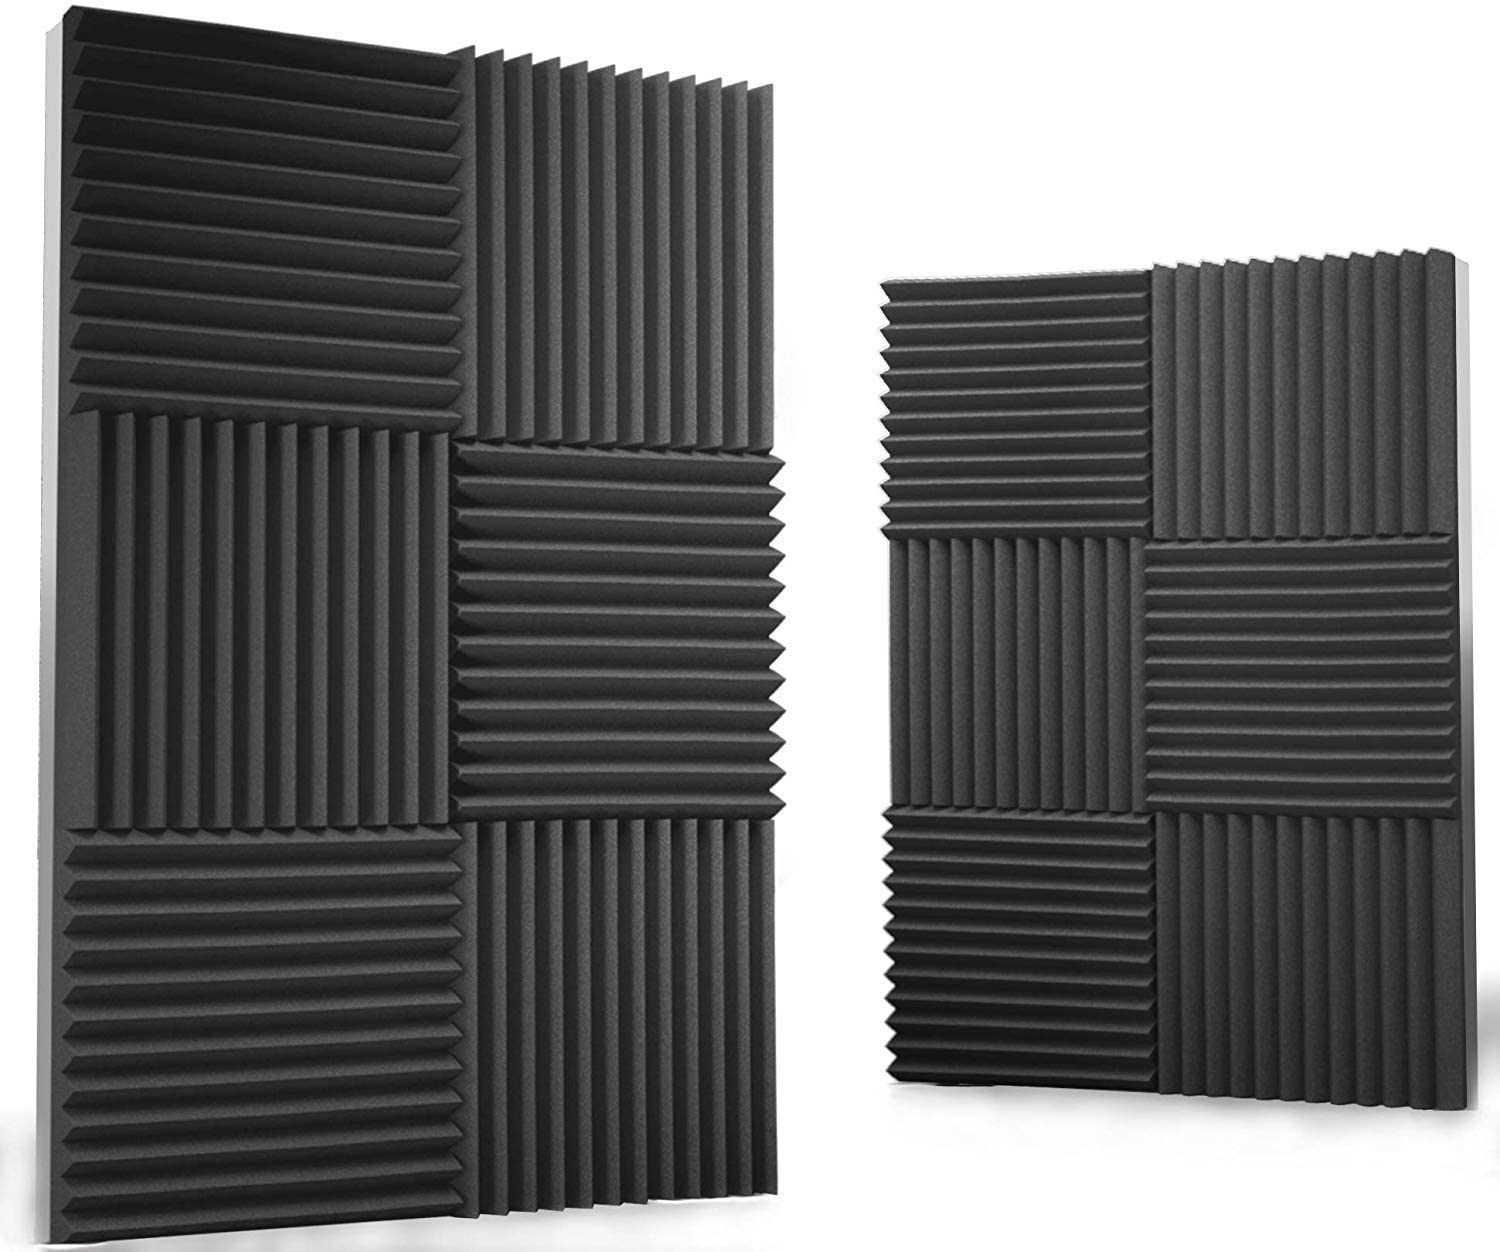 siless wall panels for sound deadening